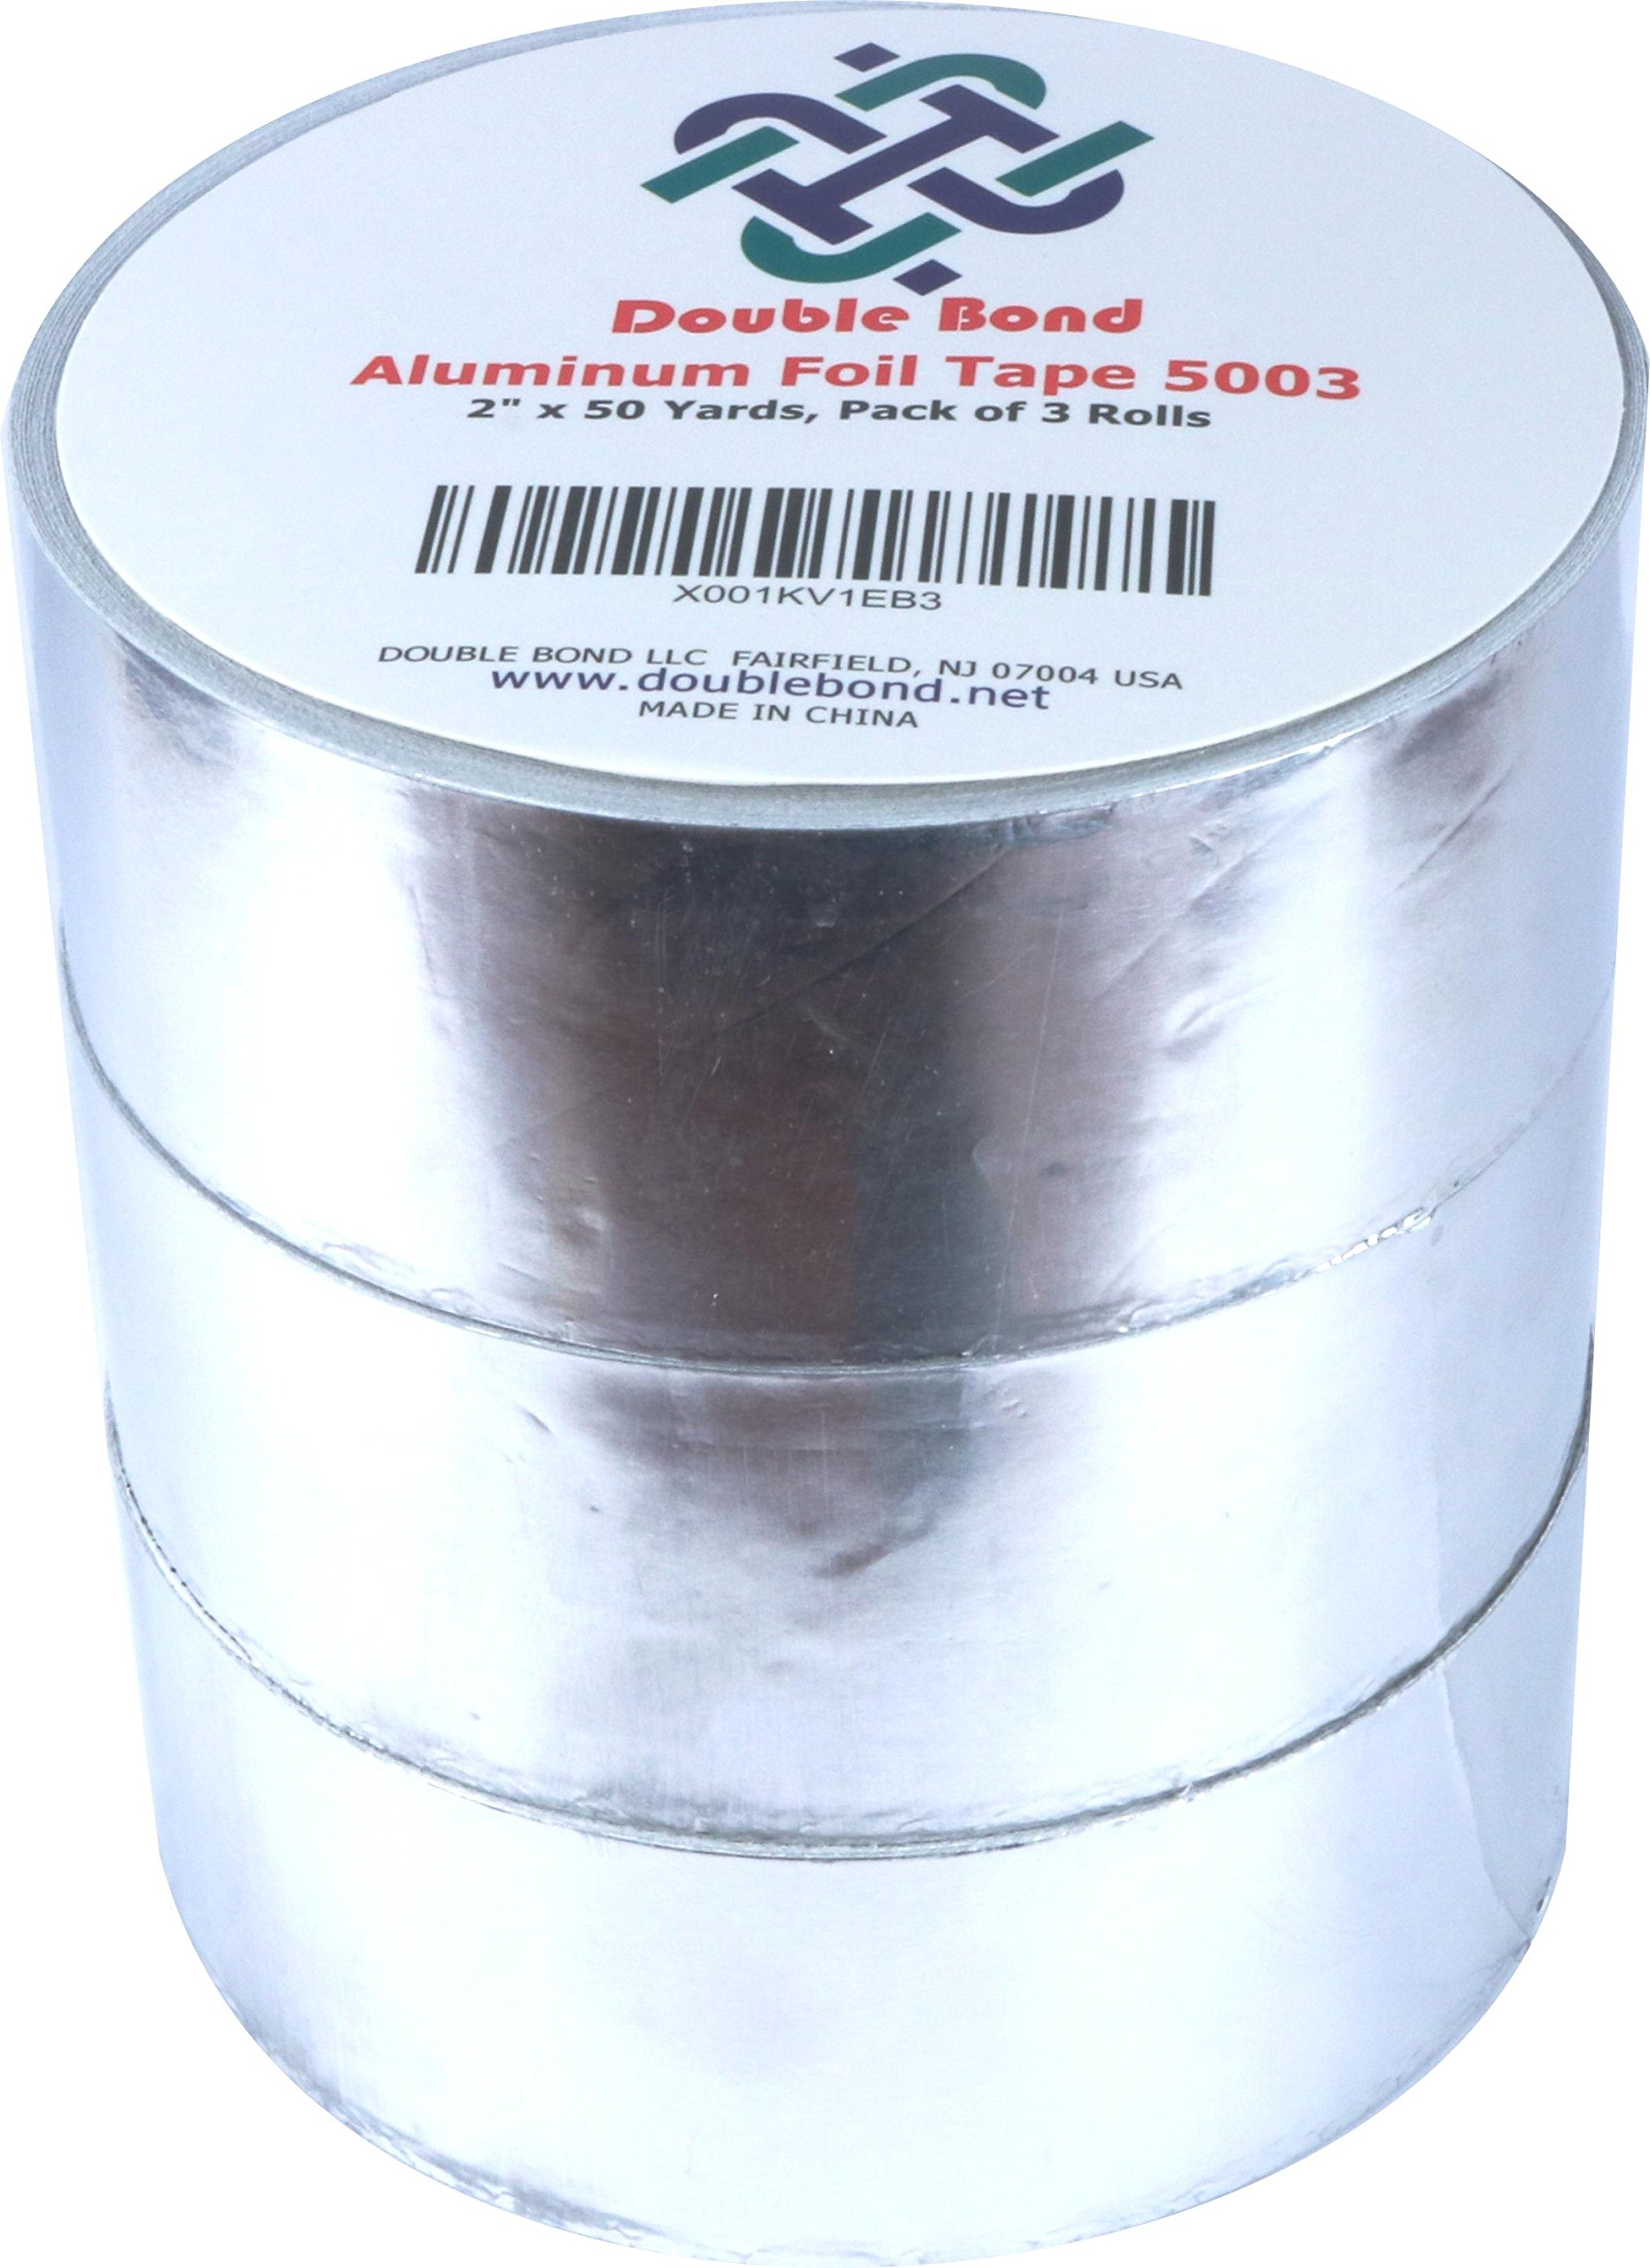 Double Bond Aluminum Foil Tape, Silver, 1.88 in x 50 yd 2.7 mil. Aluminum HVAC Tape, Duct Tape for Ducts, Foil Insulation, and Repair. Pack of 3 Rolls Aluminum Tape